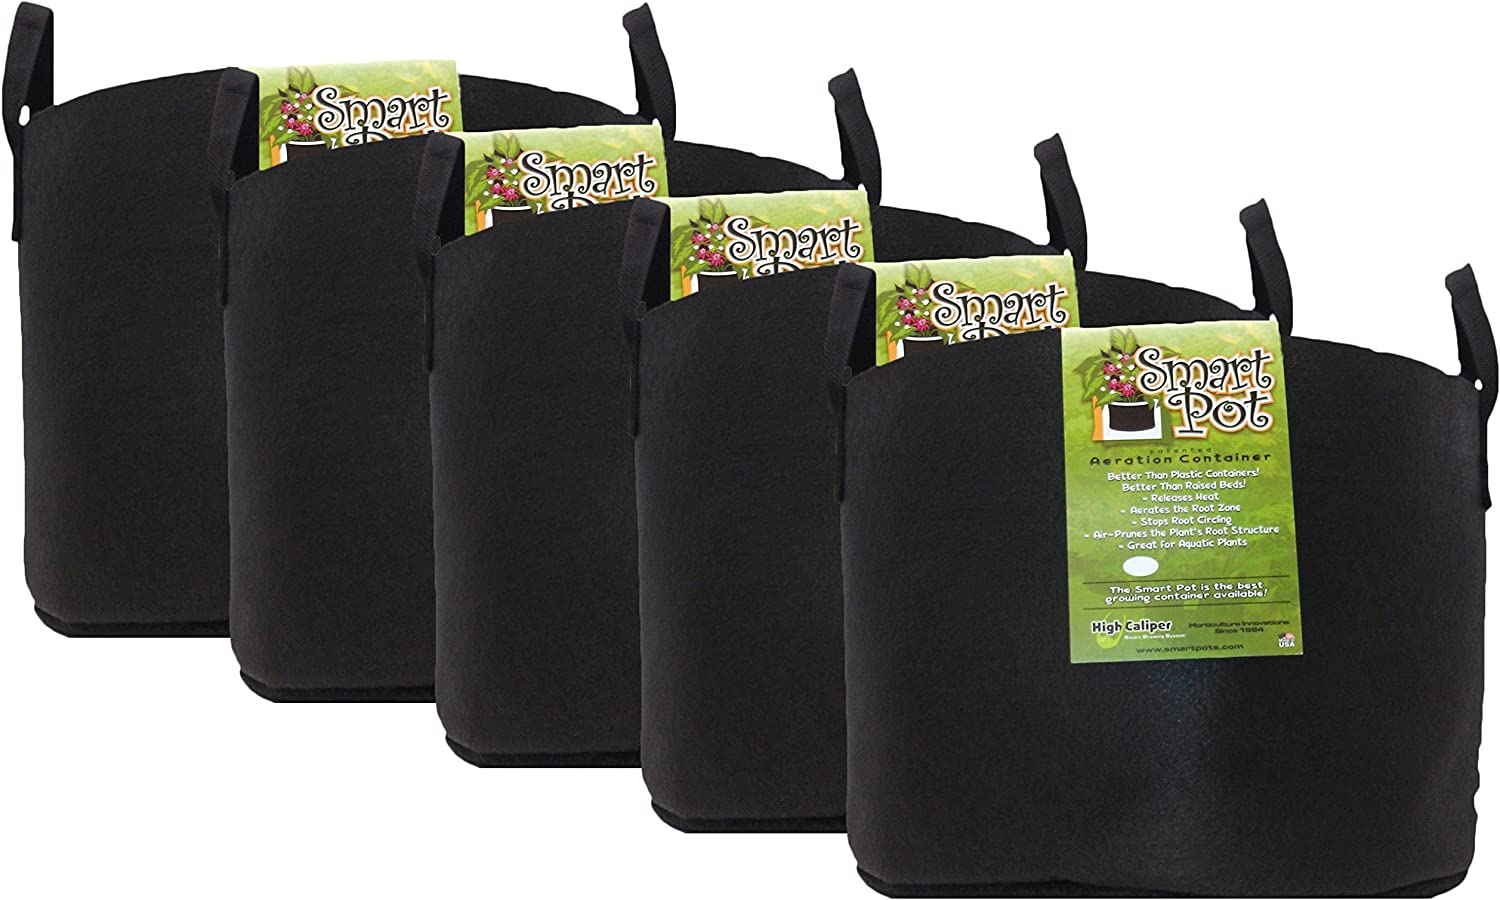 Smart Pot Soft-Sided Fabric Garden Plant Container Aeration Planter Pots with Strap Handles, 15 Gallon, 5 Pack, Black